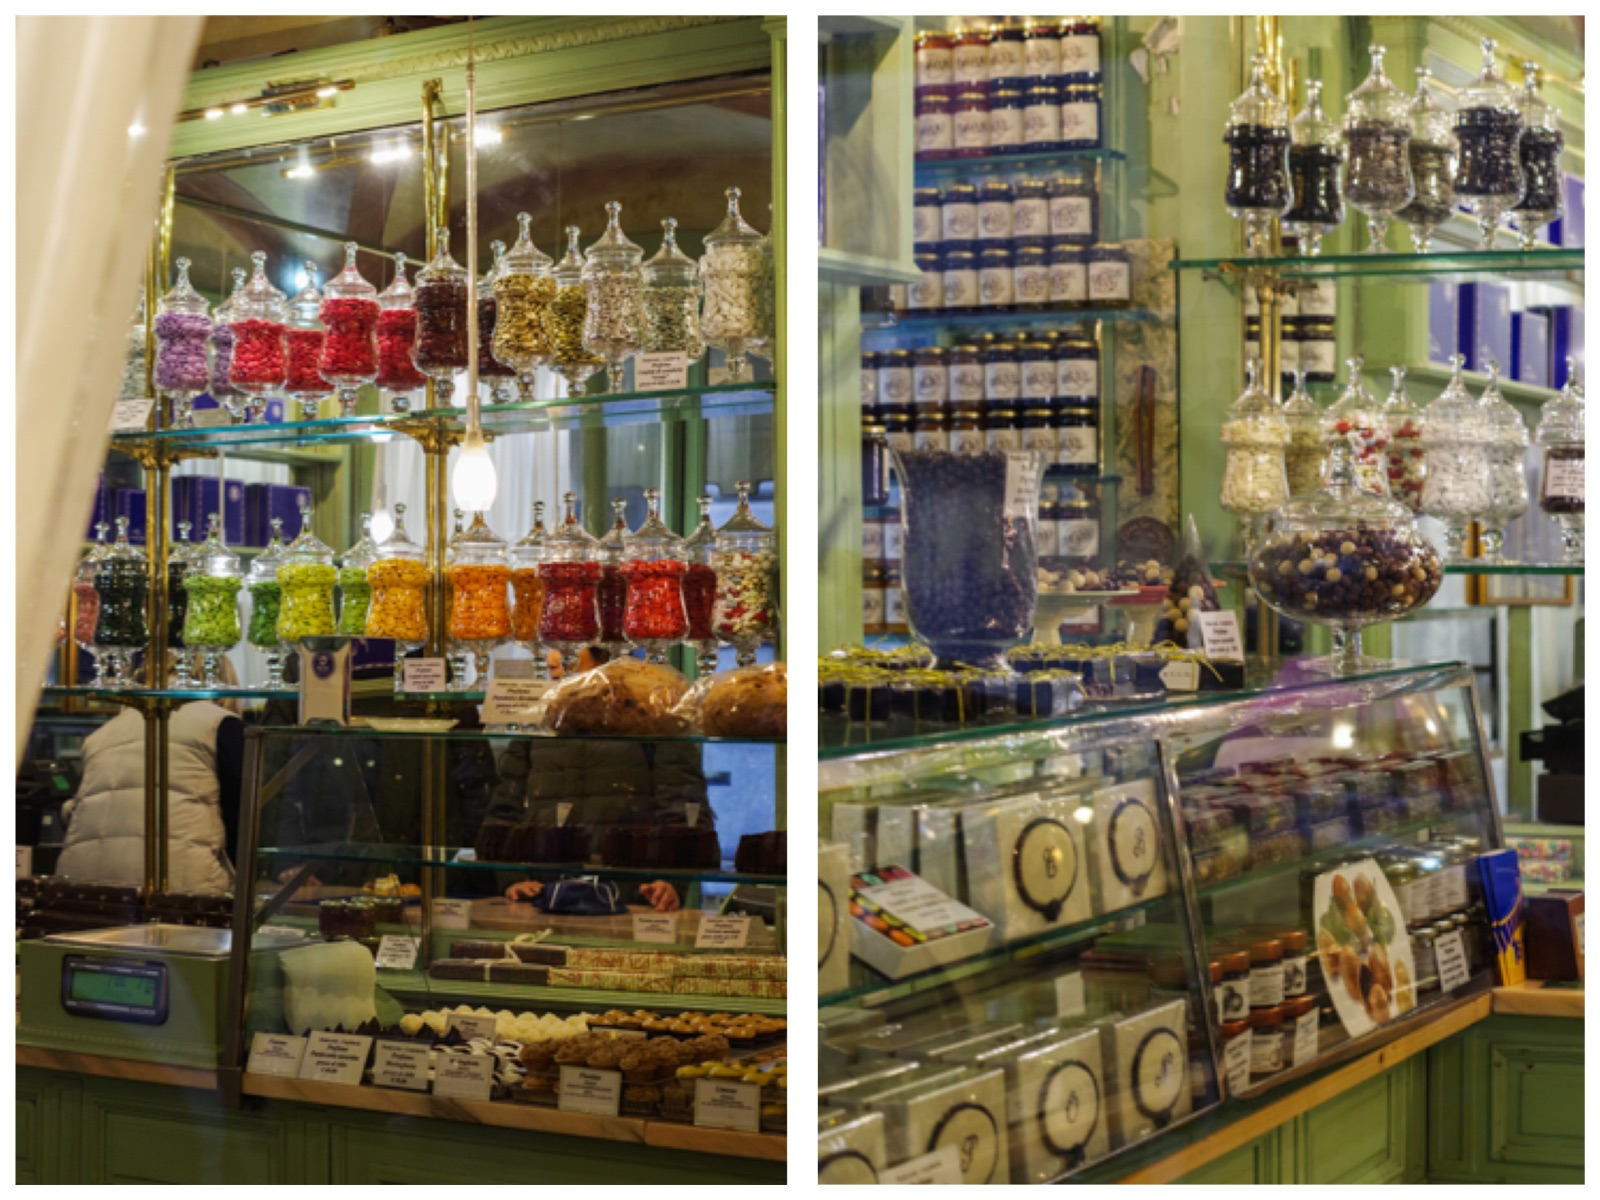 Profumo: the oldest patisserie in Genoa